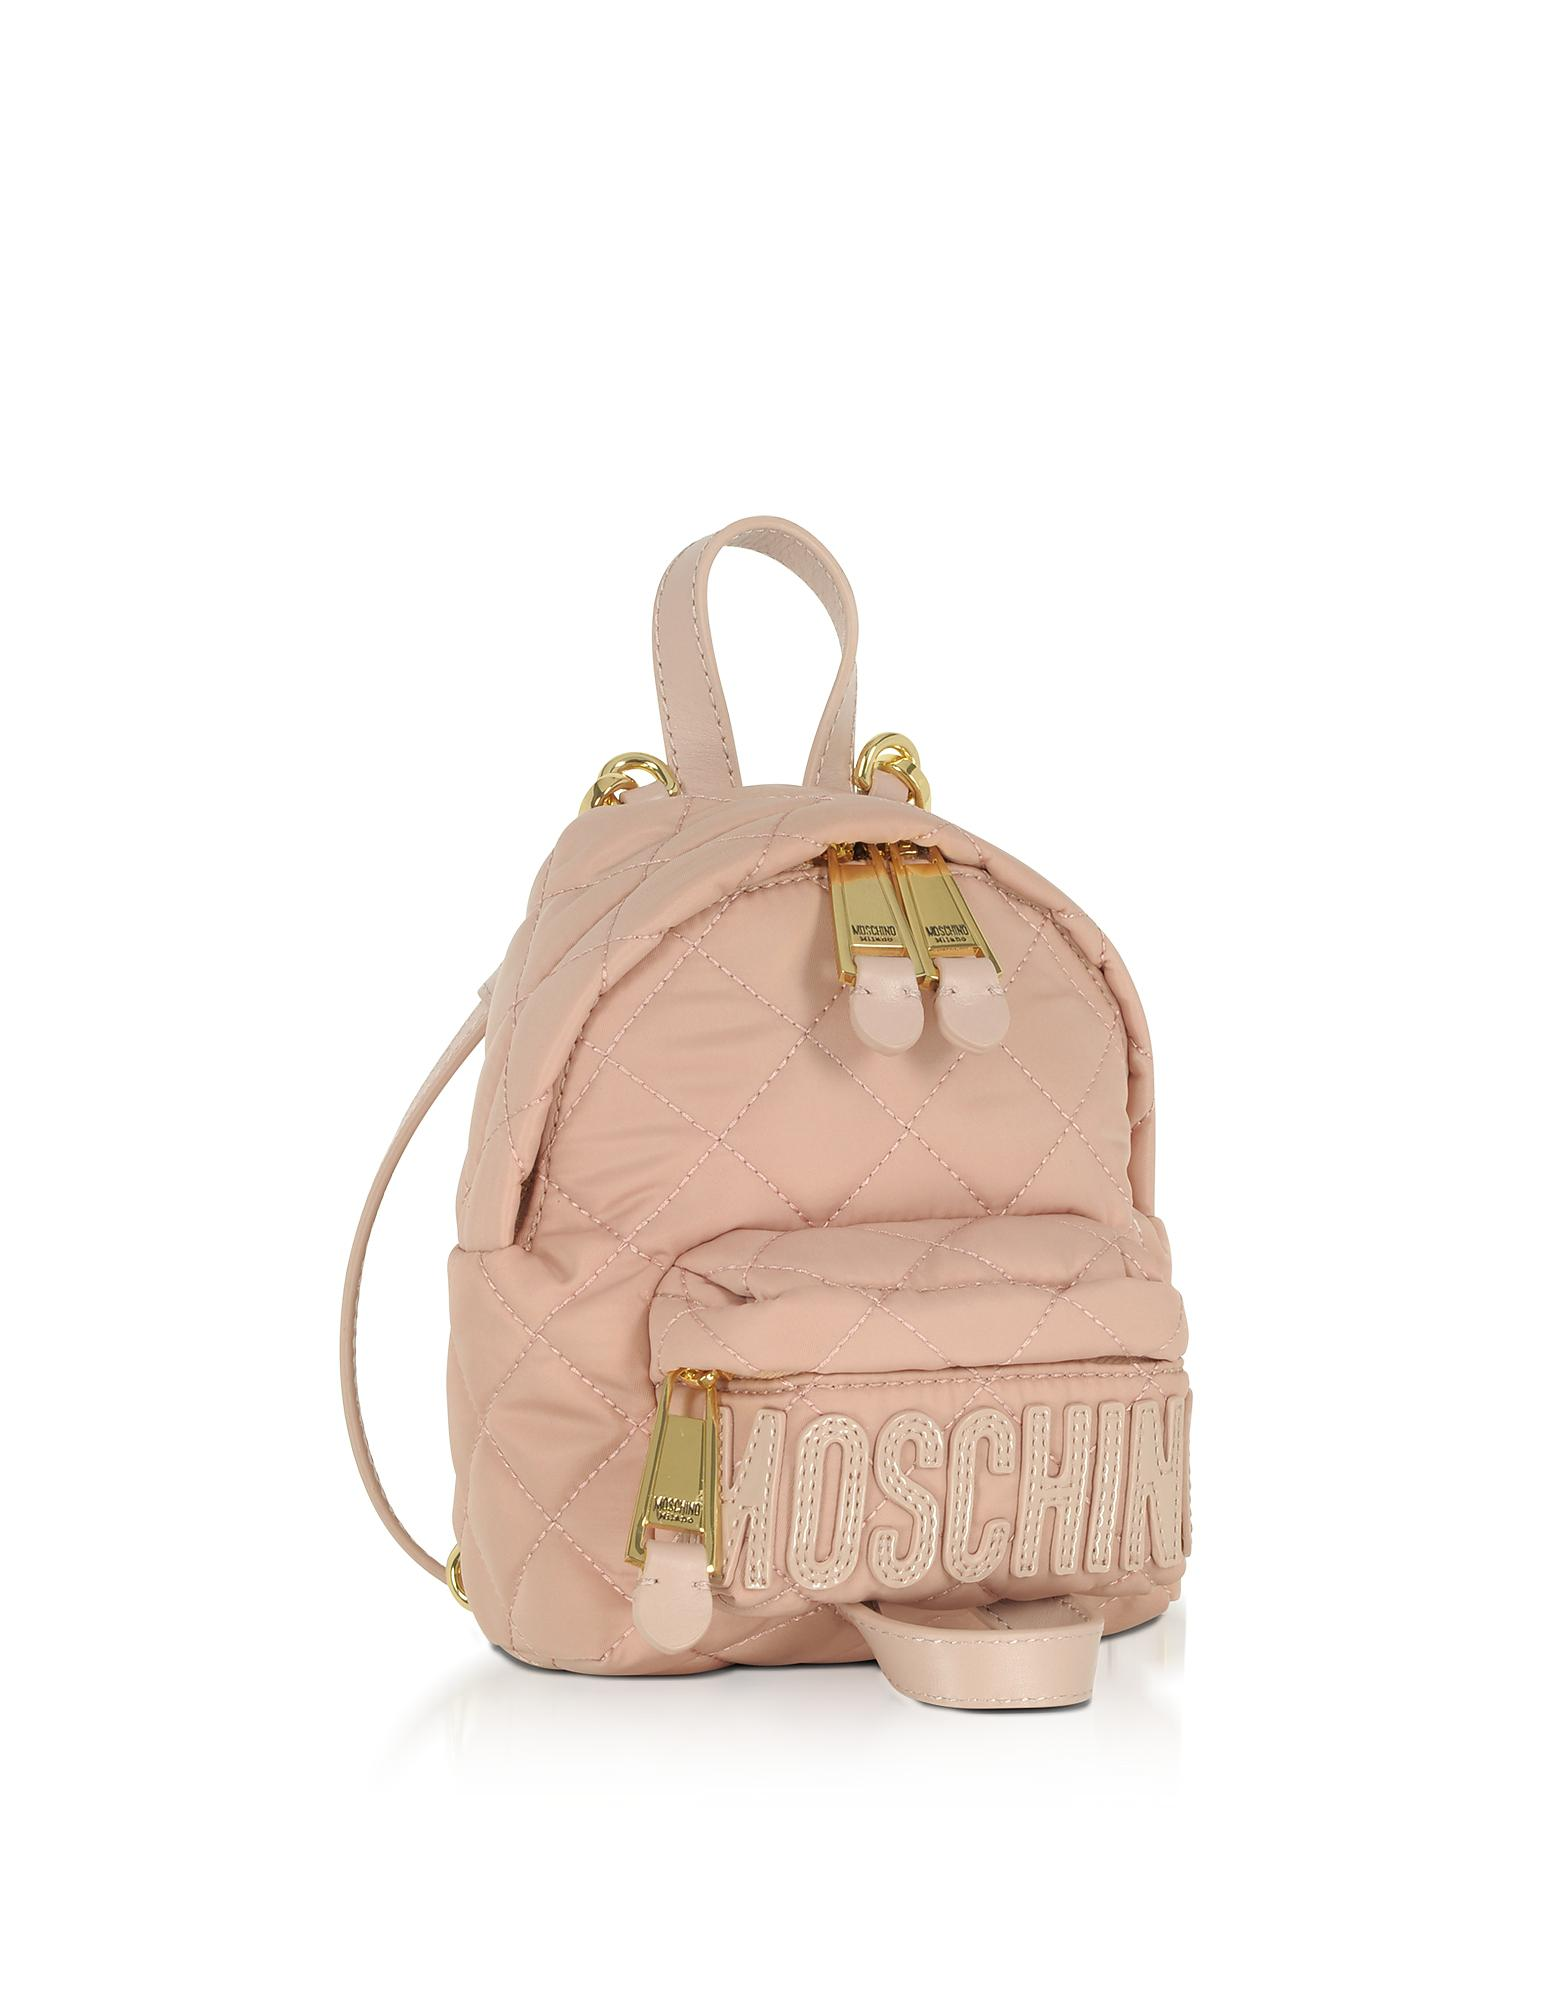 Lyst - Moschino Powder Pink Quilted Nylon Mini Backpack W logo in Pink 961b9d3b263a0